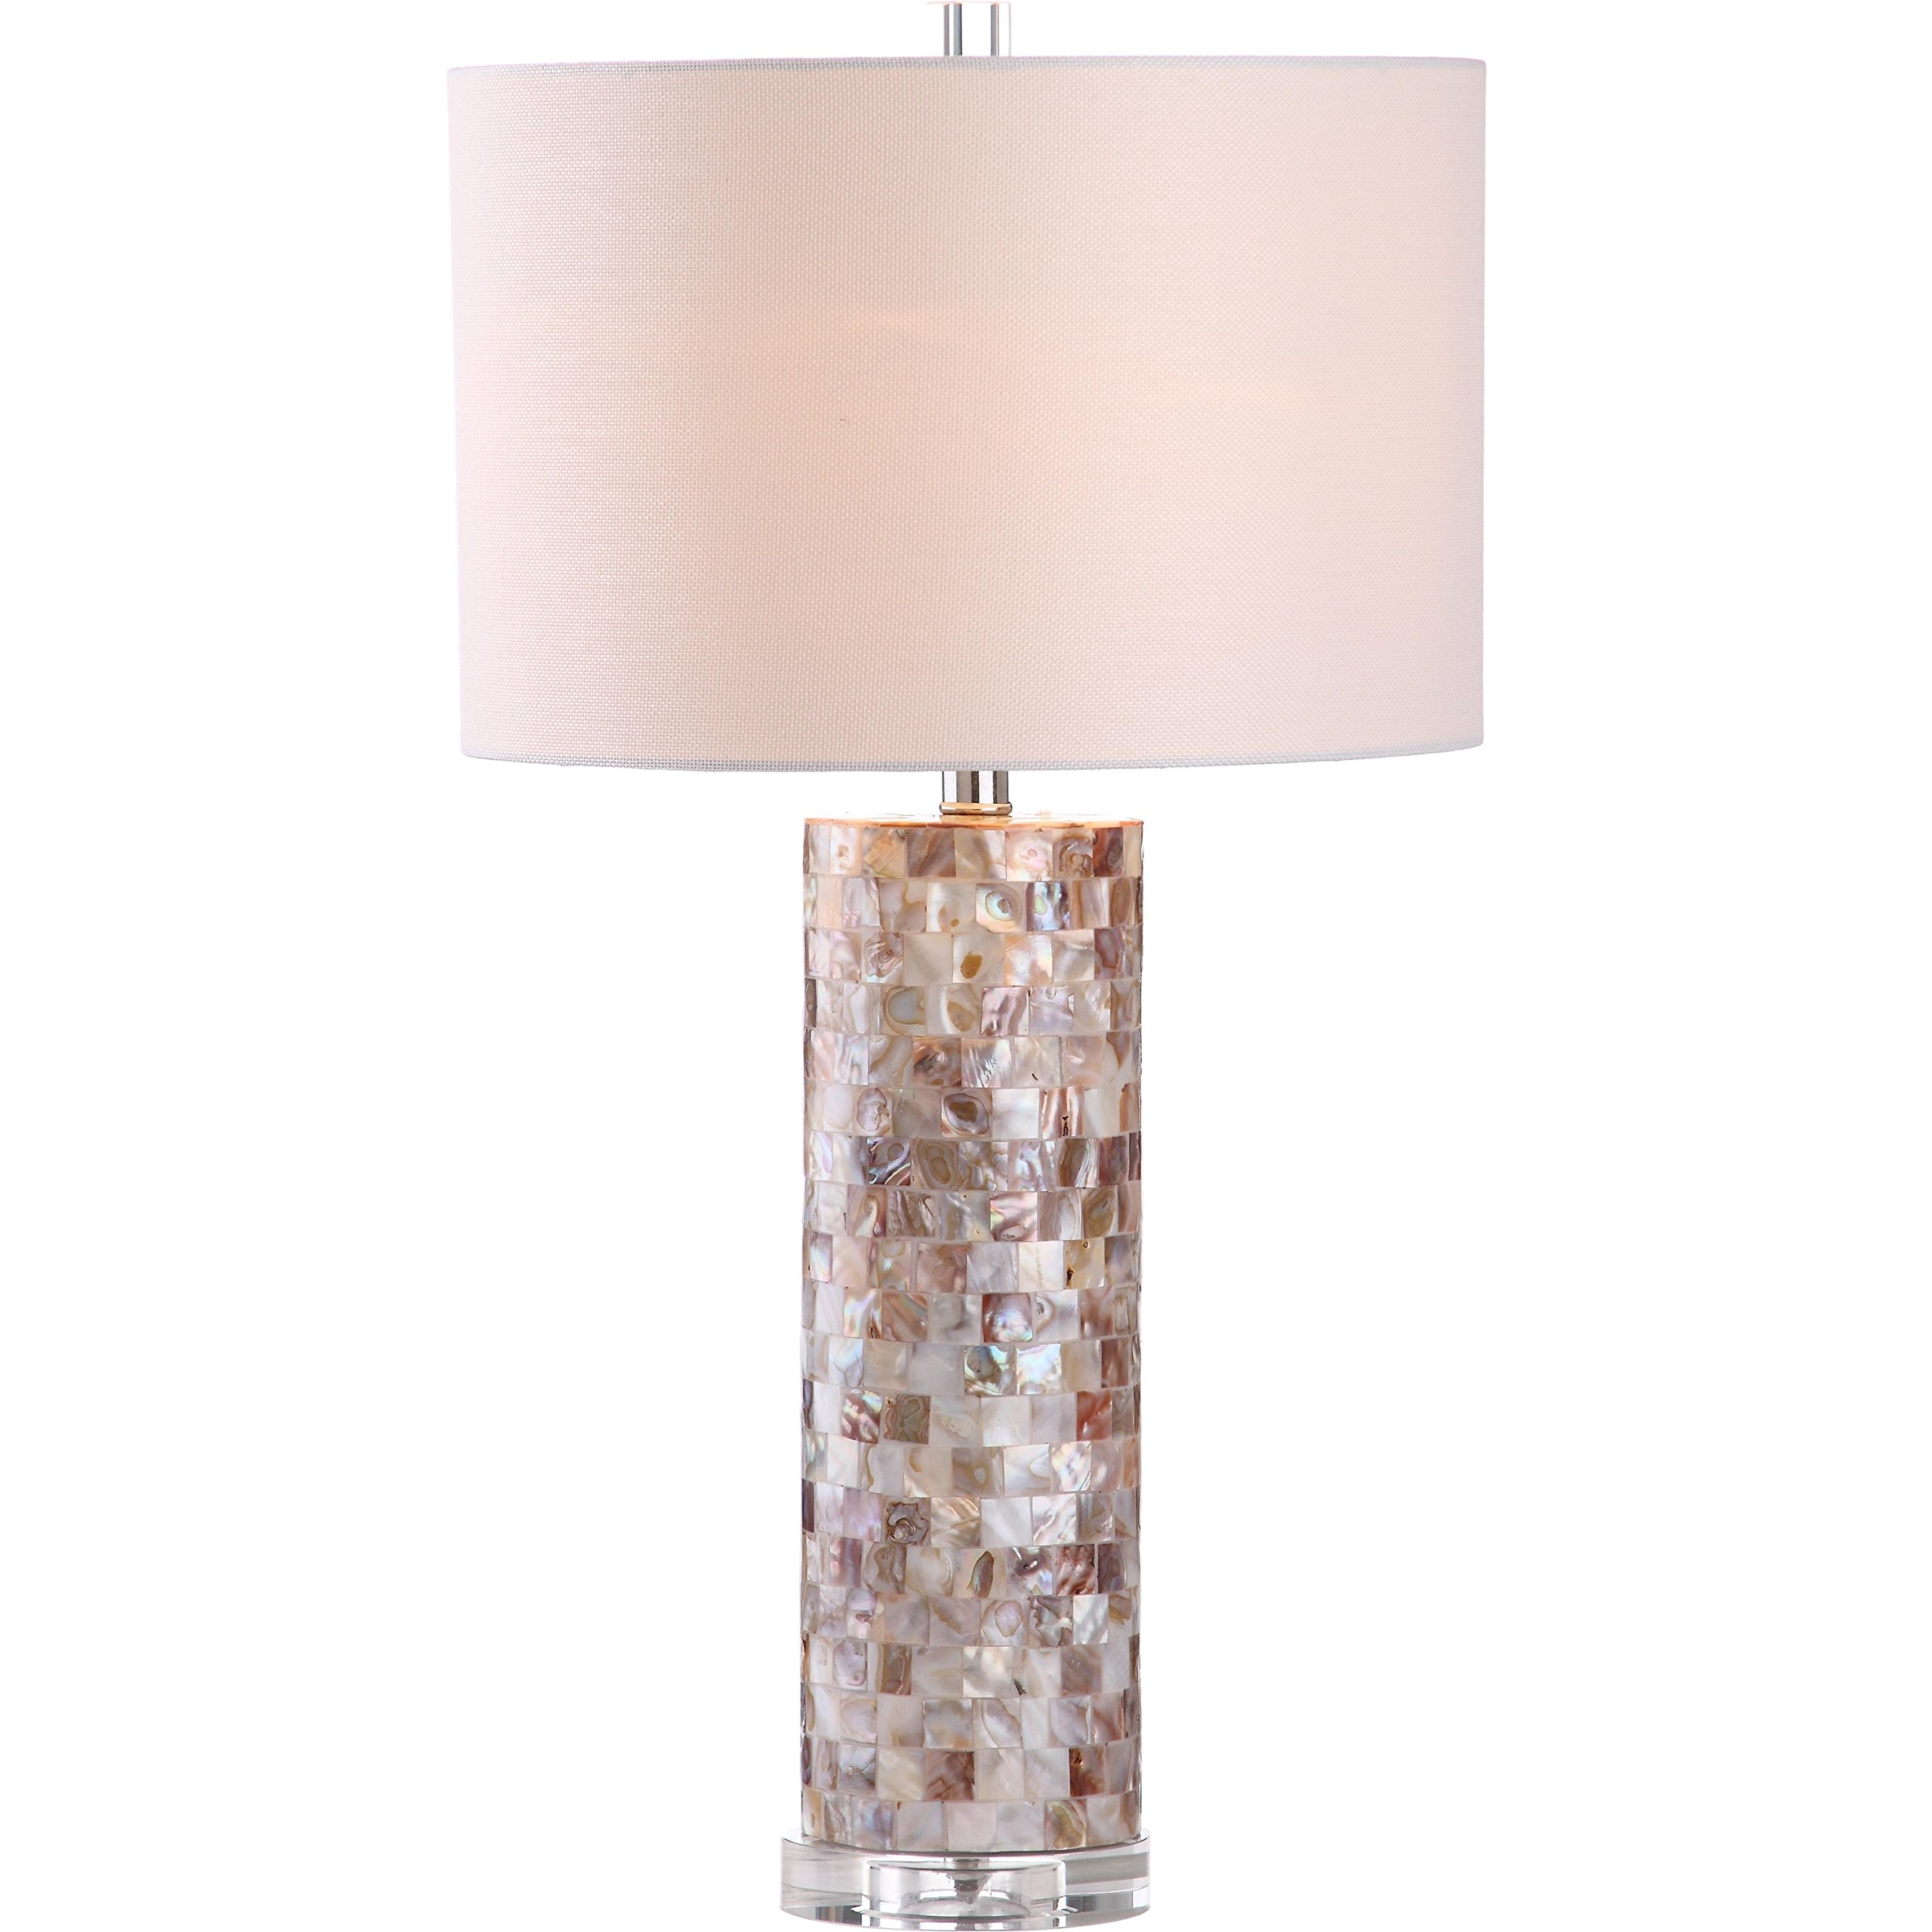 Safavieh Lighting Collection Boise Cream 28.9-inch Table Lamp (Set of 2)